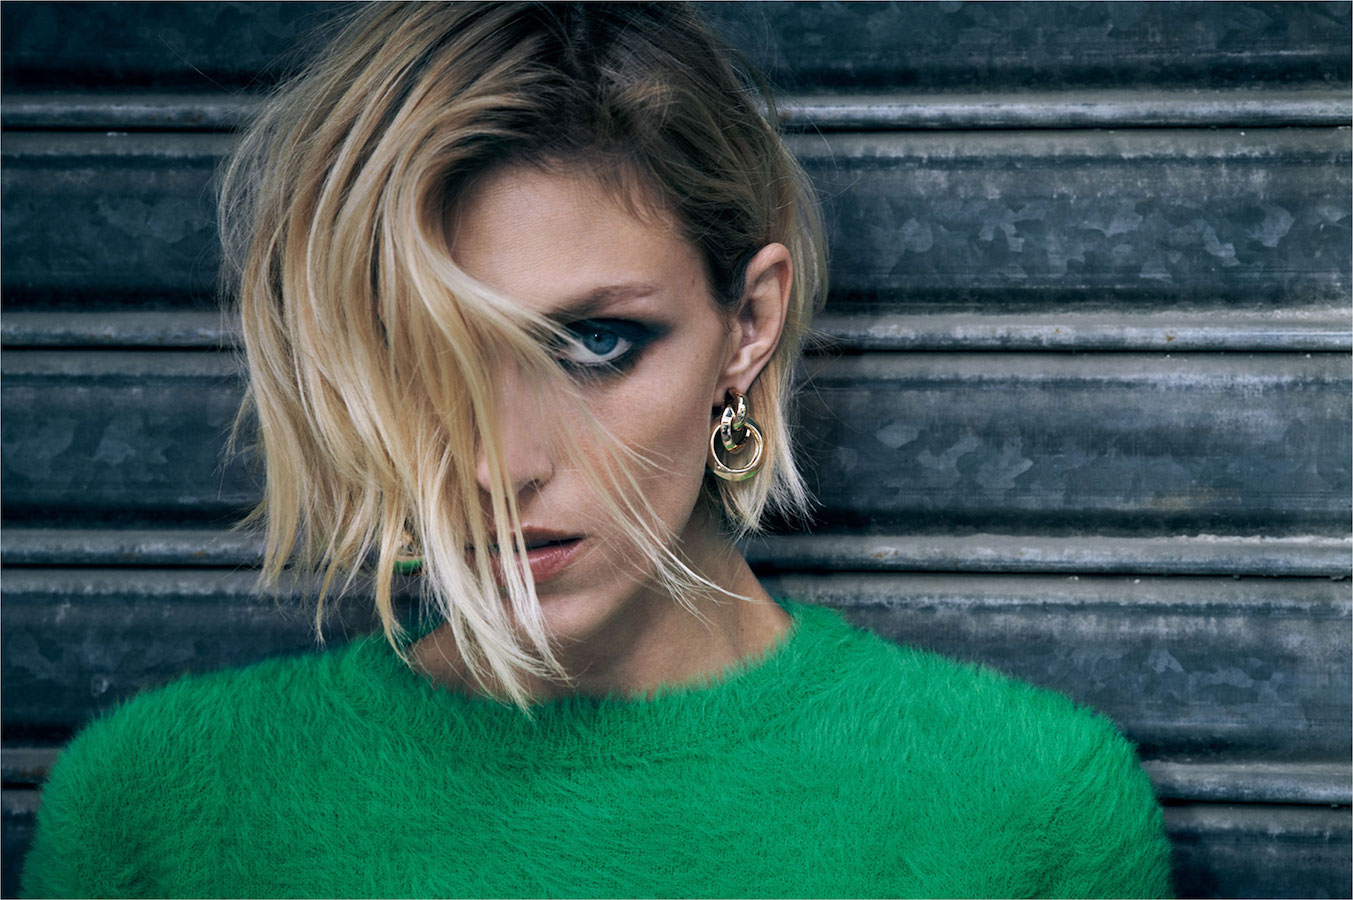 Anja Rubik Hot Smoky Eyes Wallpapers - Anja Rubik Hot Smoky Eyes Wallpapers